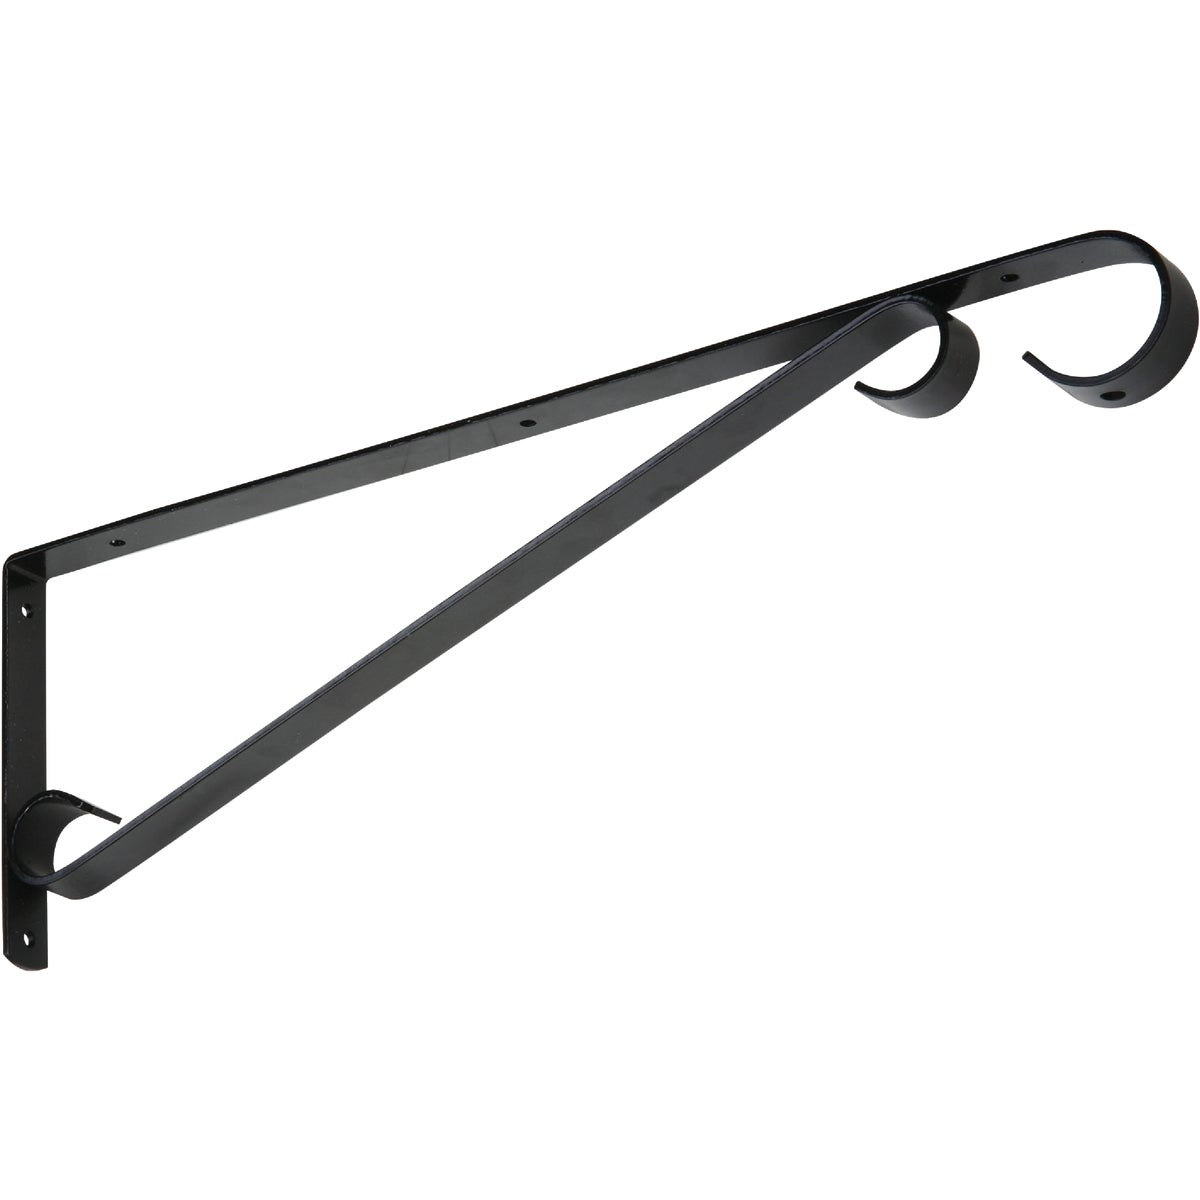 "15"" BLACK PLANT BRACKET - N274621 by National Mfg Co"